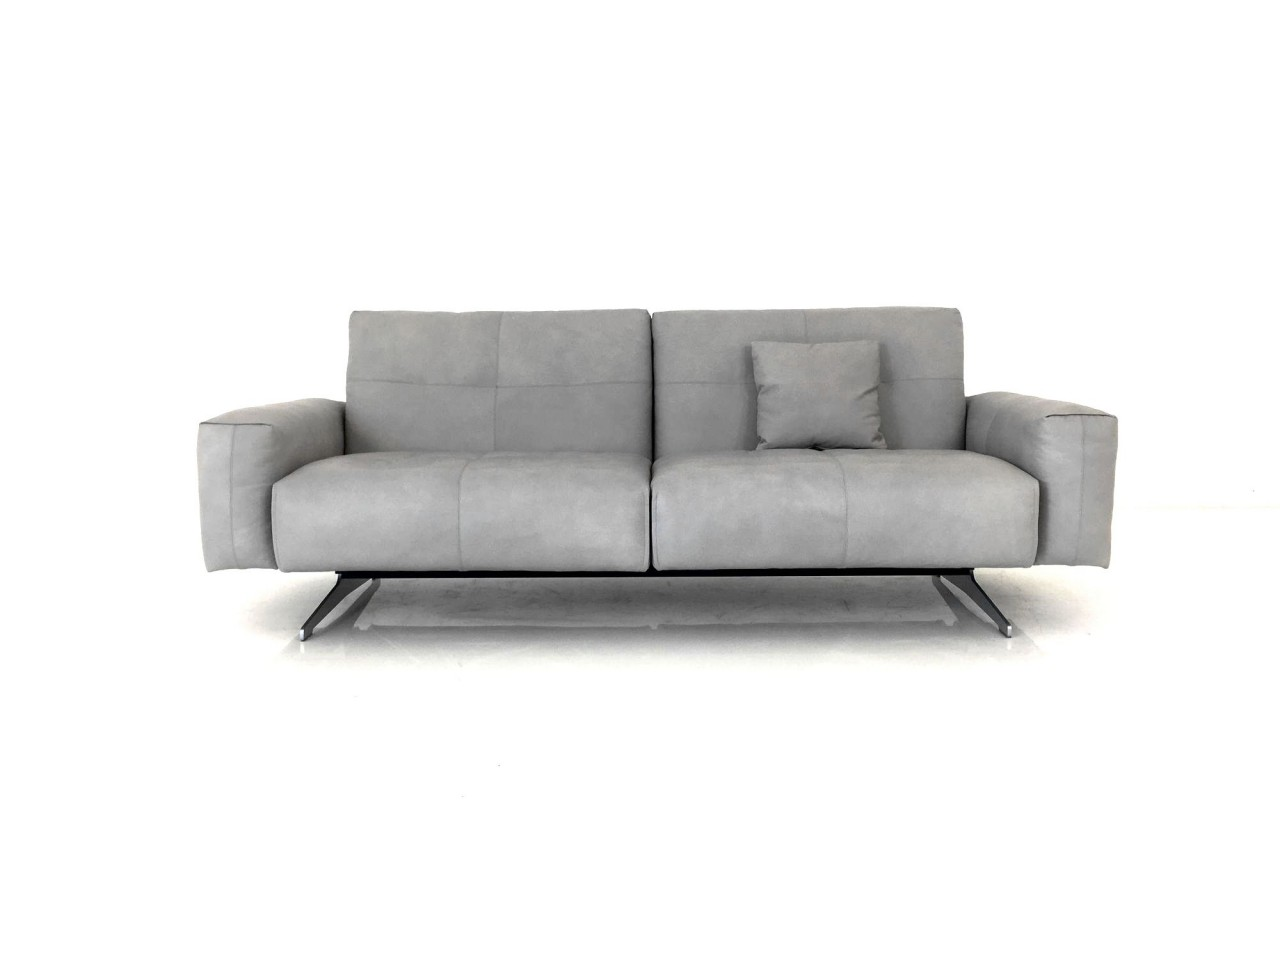 Ecksofa Rolf Benz Outlet Rolf Benz Outlet Outlet Poltrona Frau Rolf Benz Nuvola Lounge